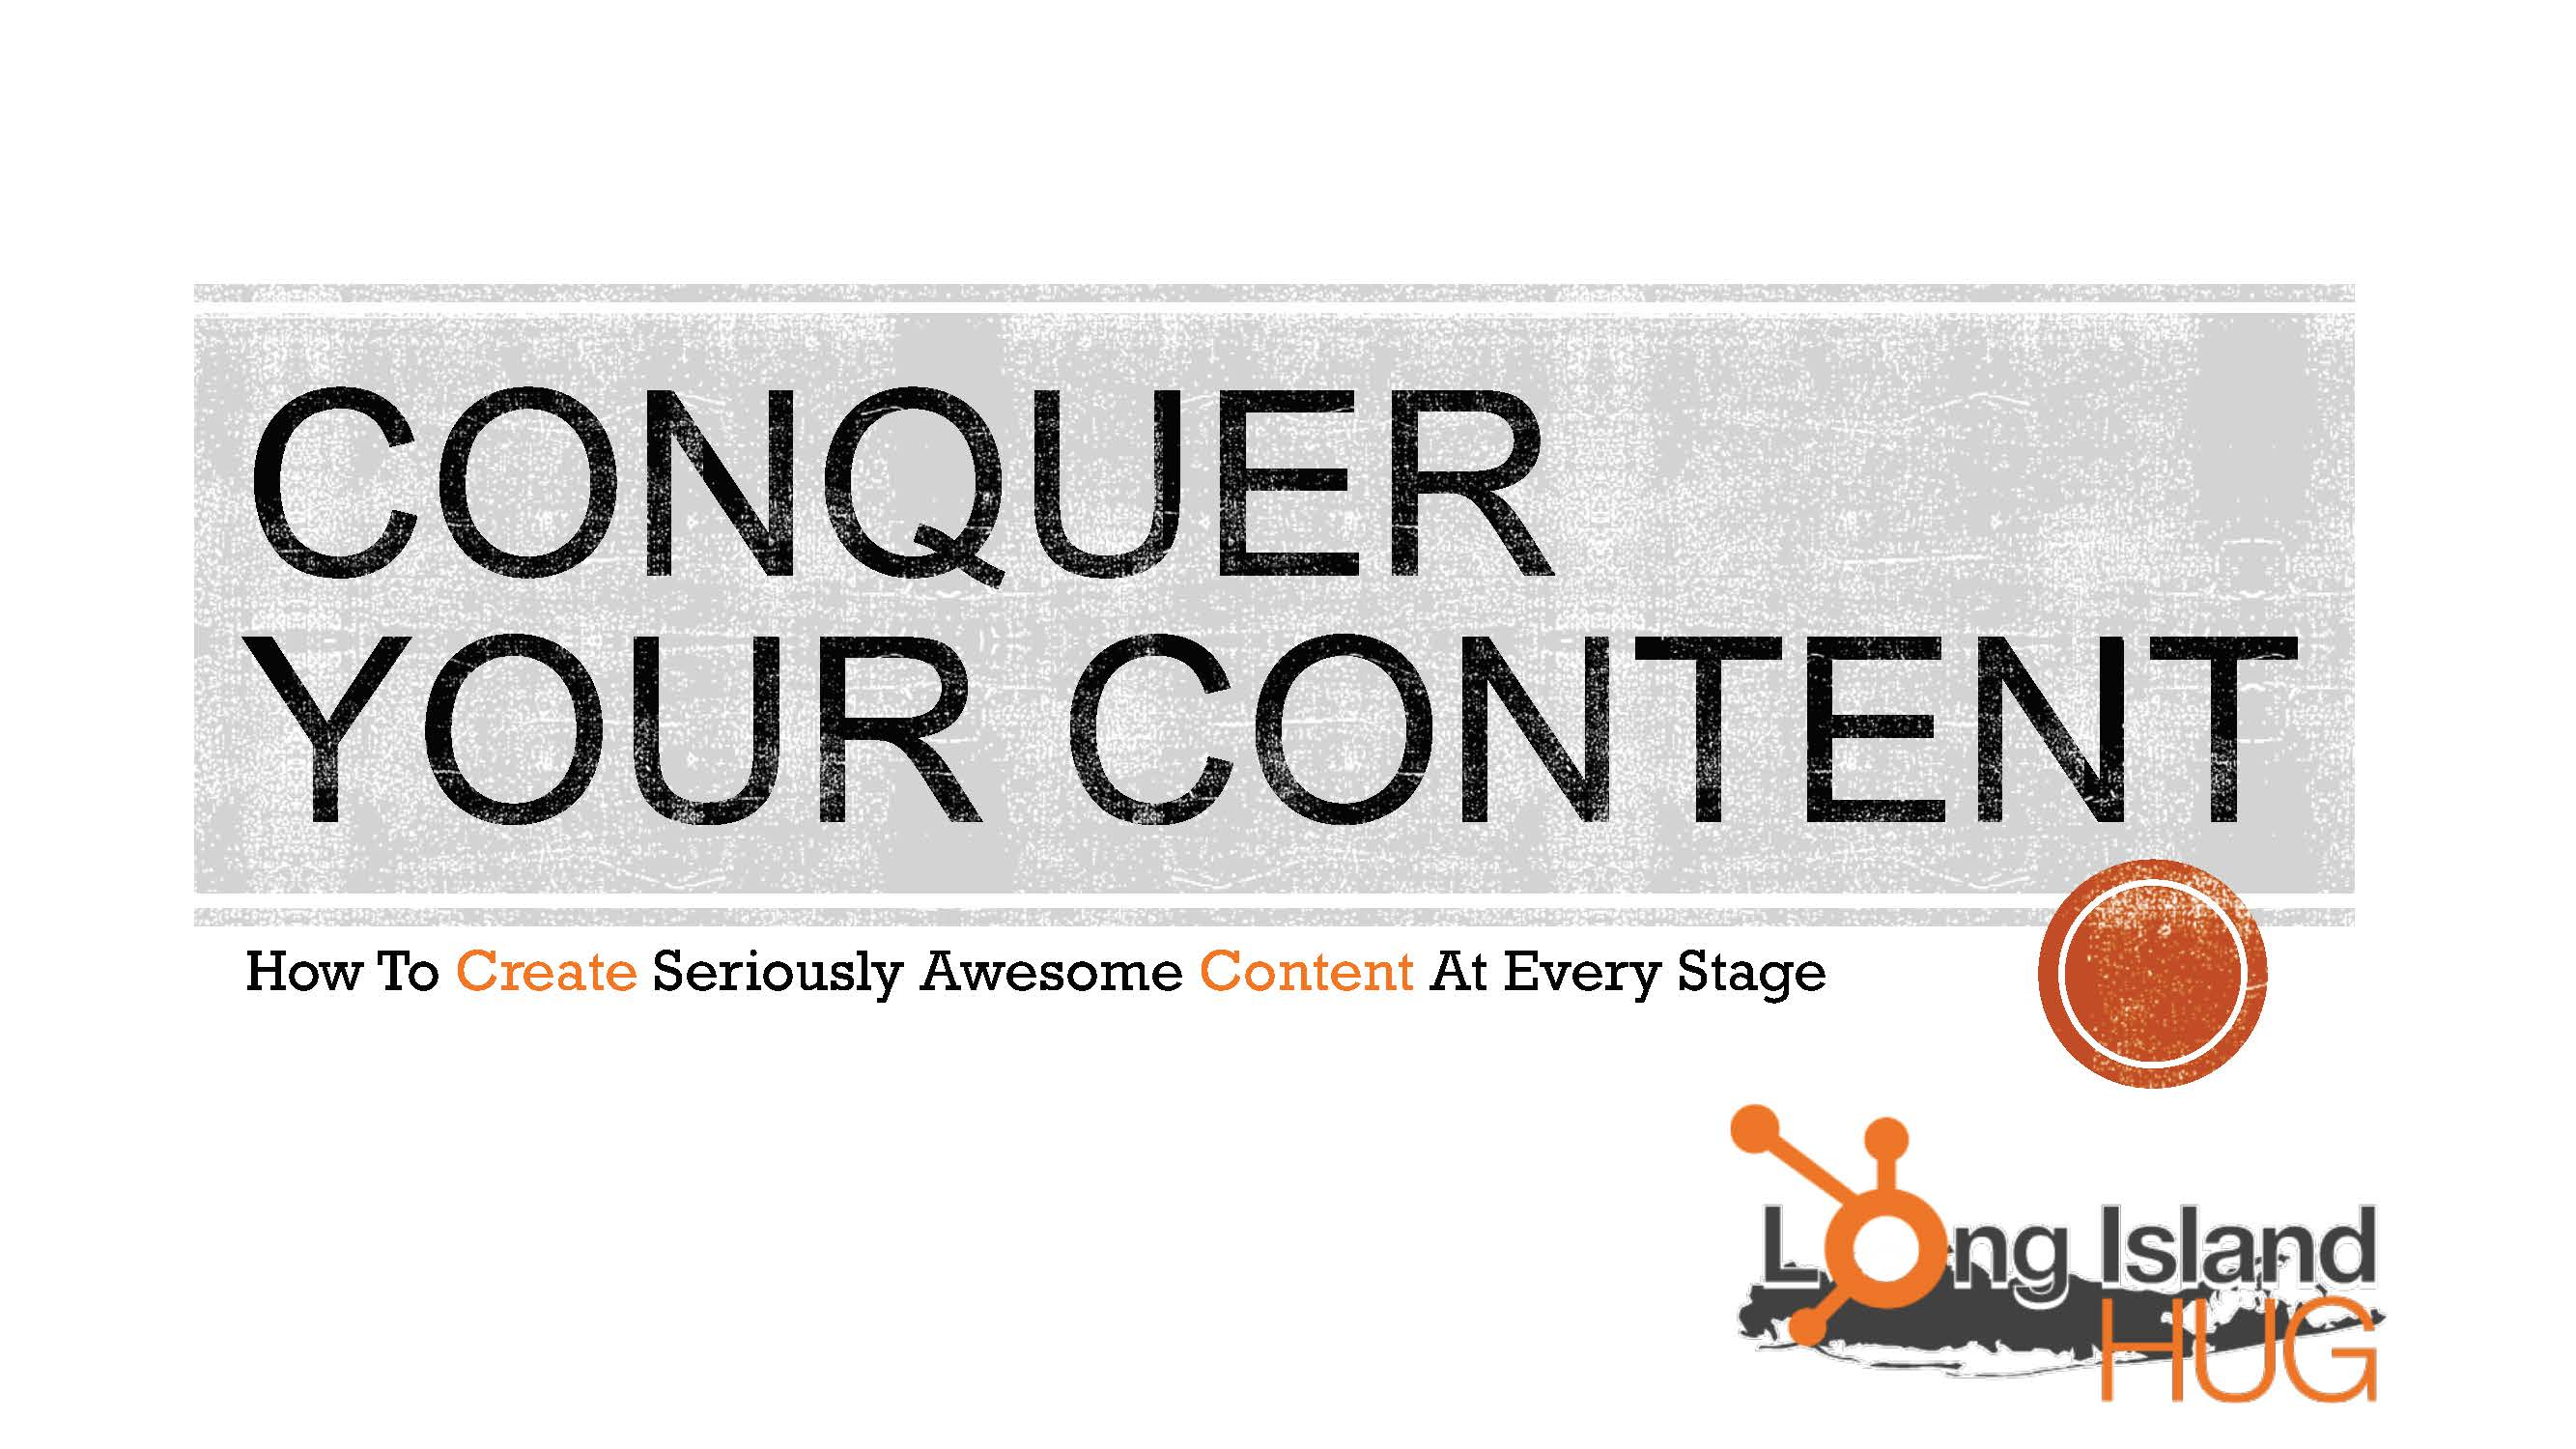 Conquer Your Content - July 2015 HUG